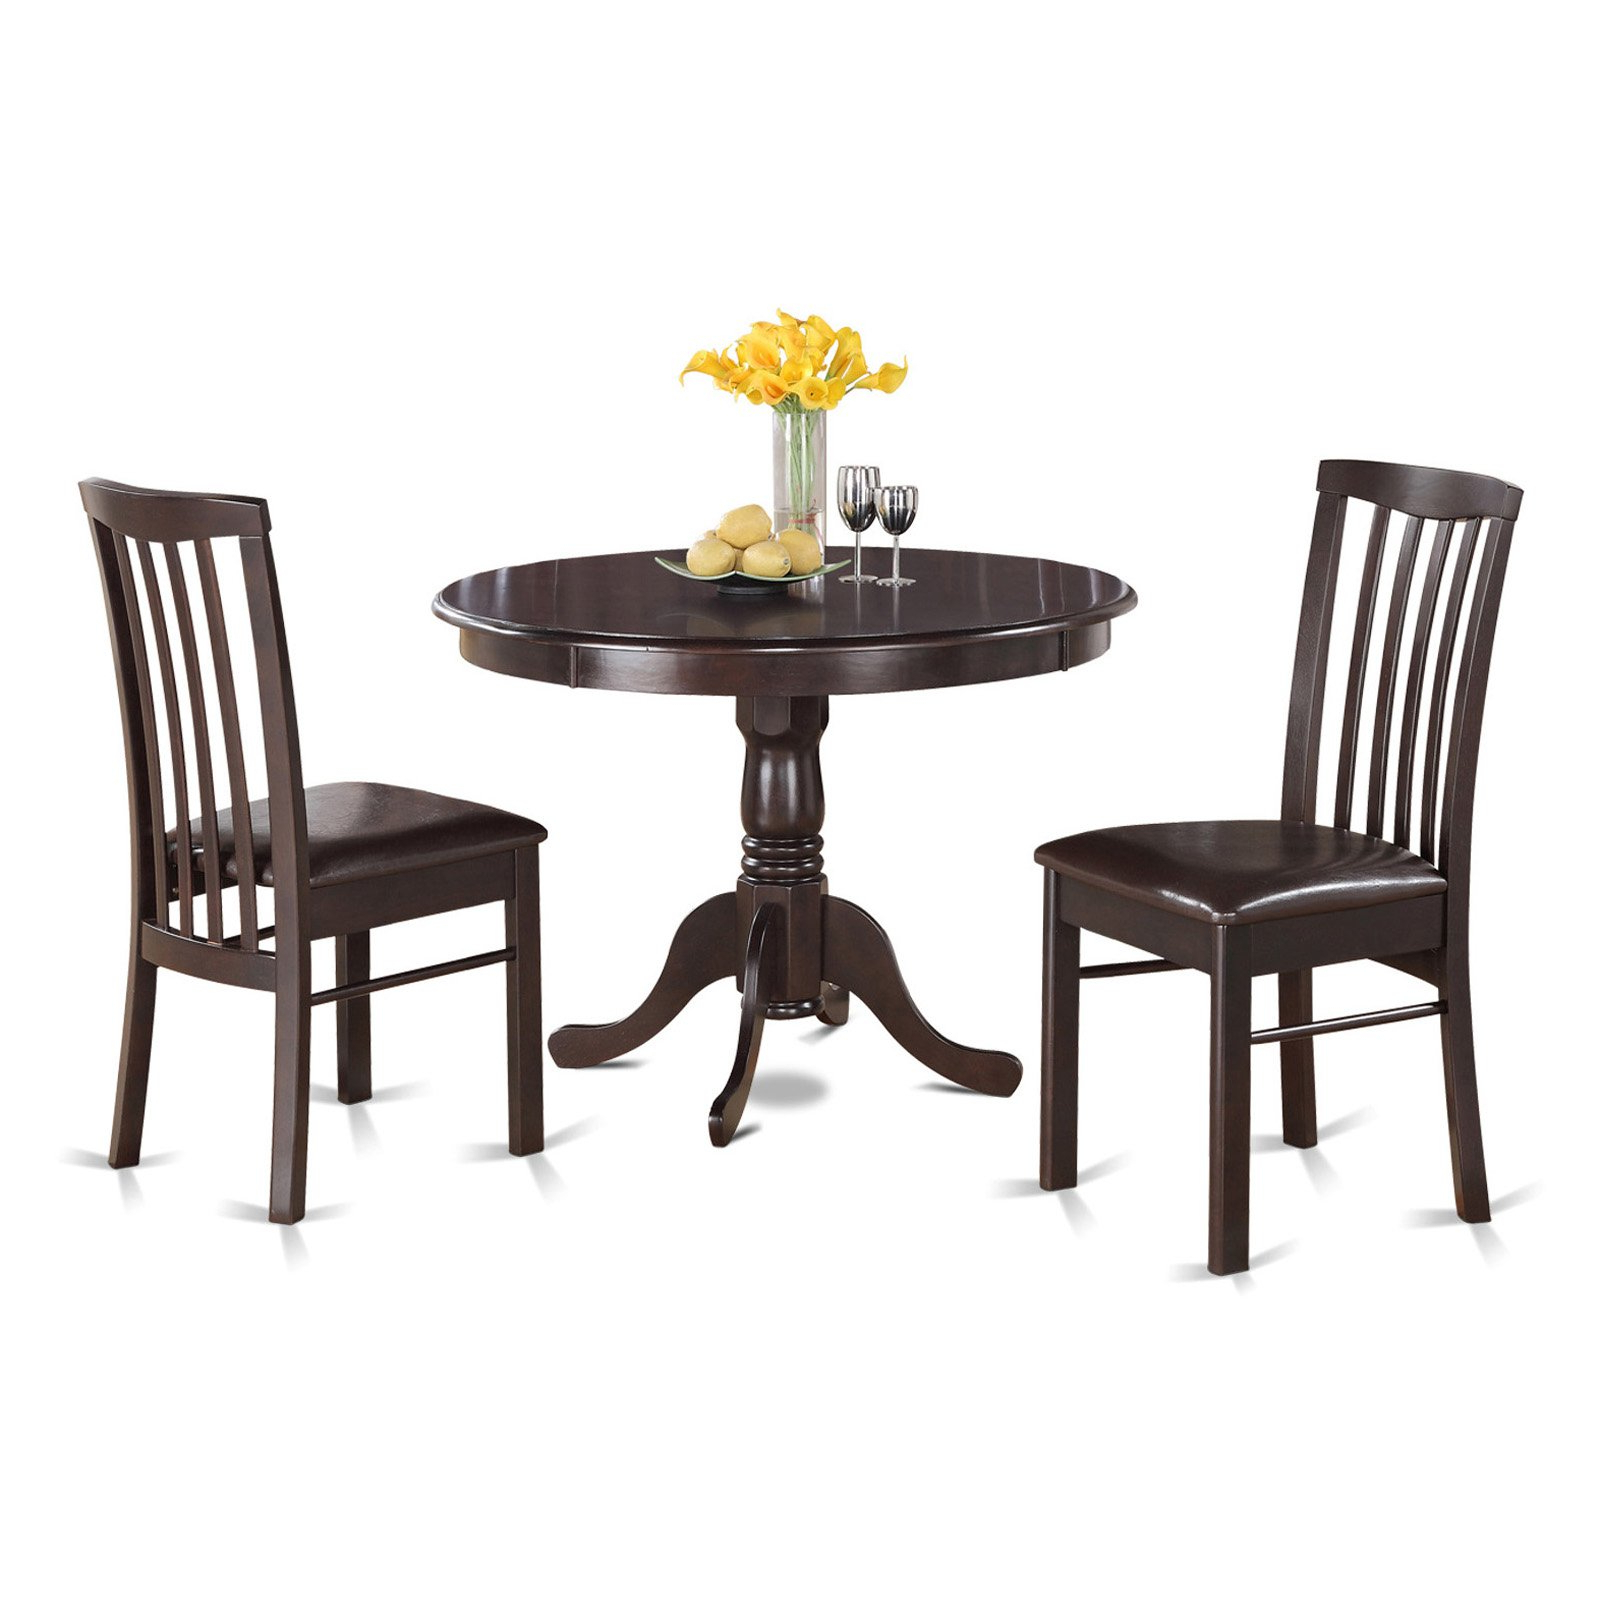 Charcoal Transitional 6 Seating Rectangular Dining Tables Pertaining To Most Recently Released East West Furniture Hartland 3 Piece Round Pedestal Dining (View 7 of 30)